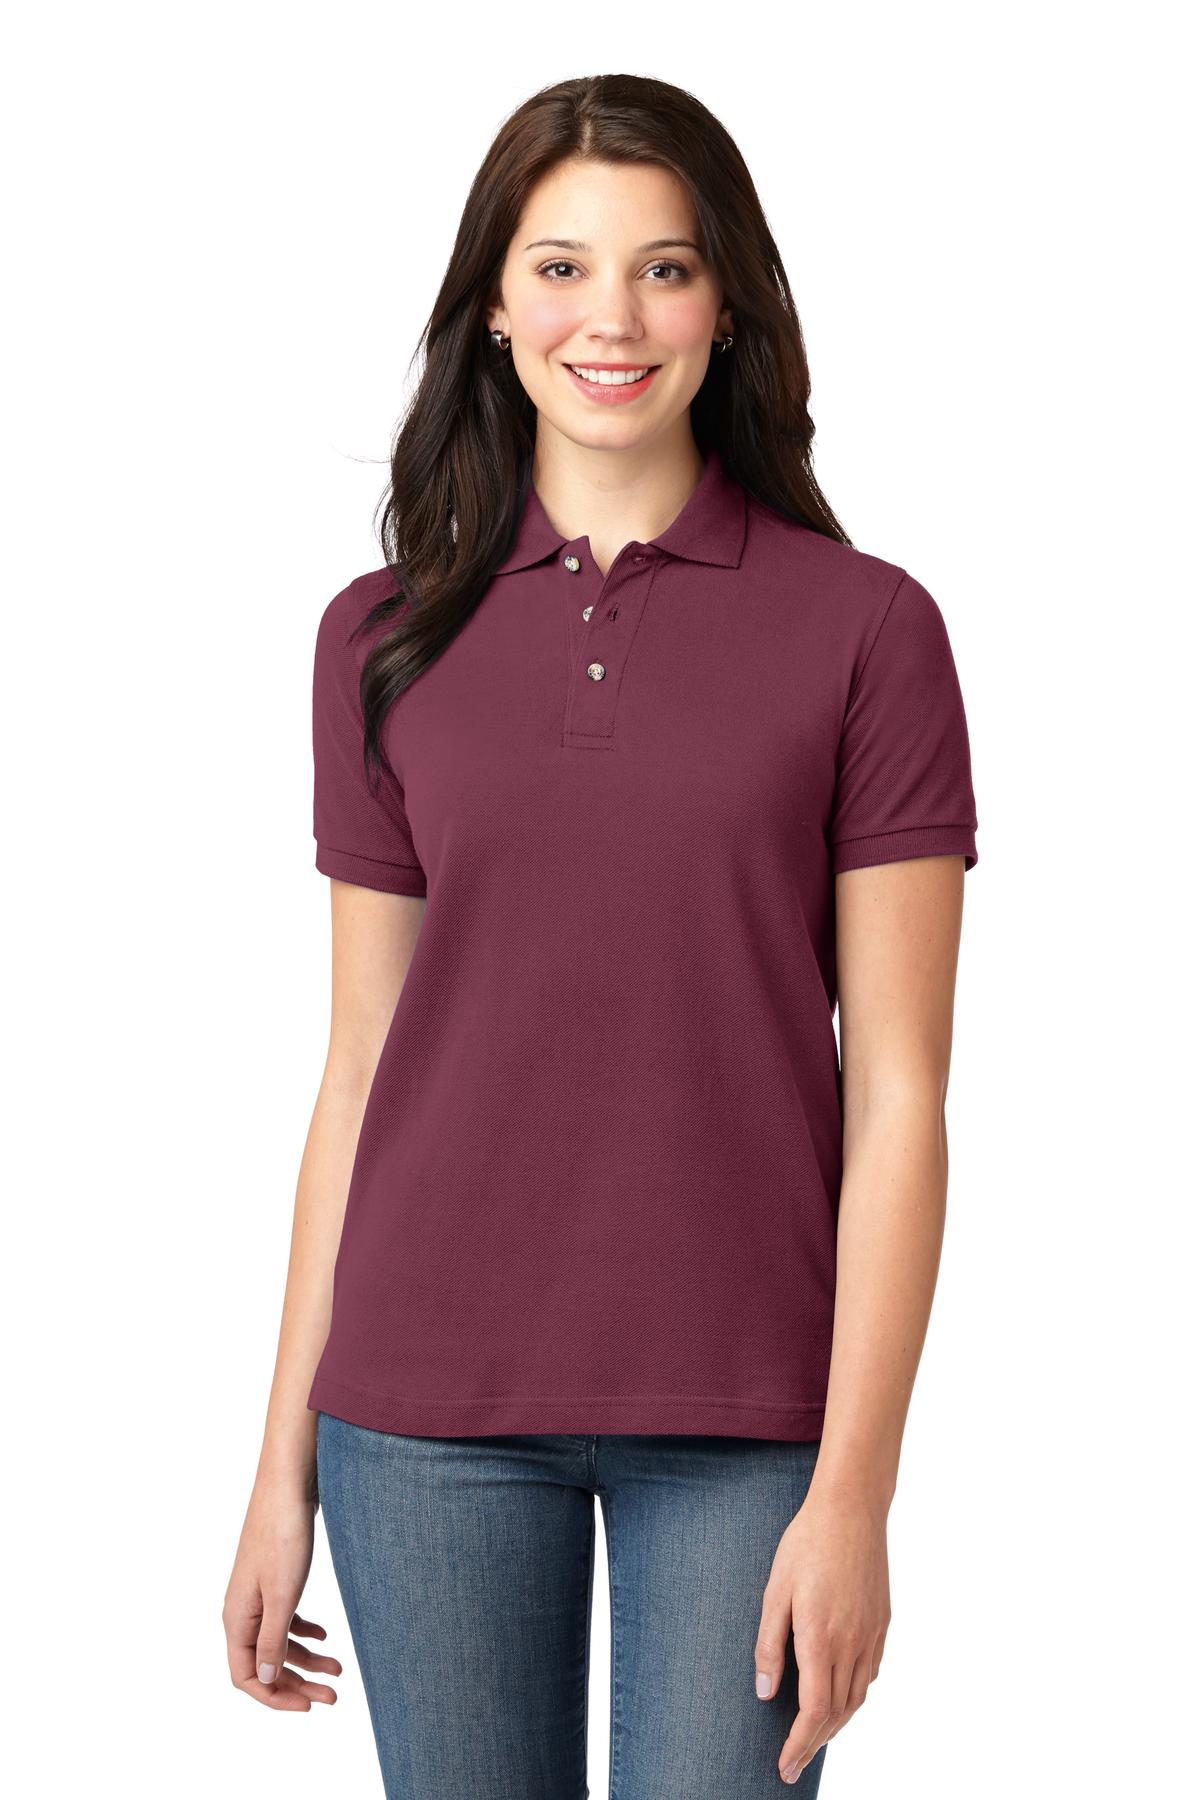 Port Authority® Ladies Heavyweight Cotton Pique Polo.-Port Authority